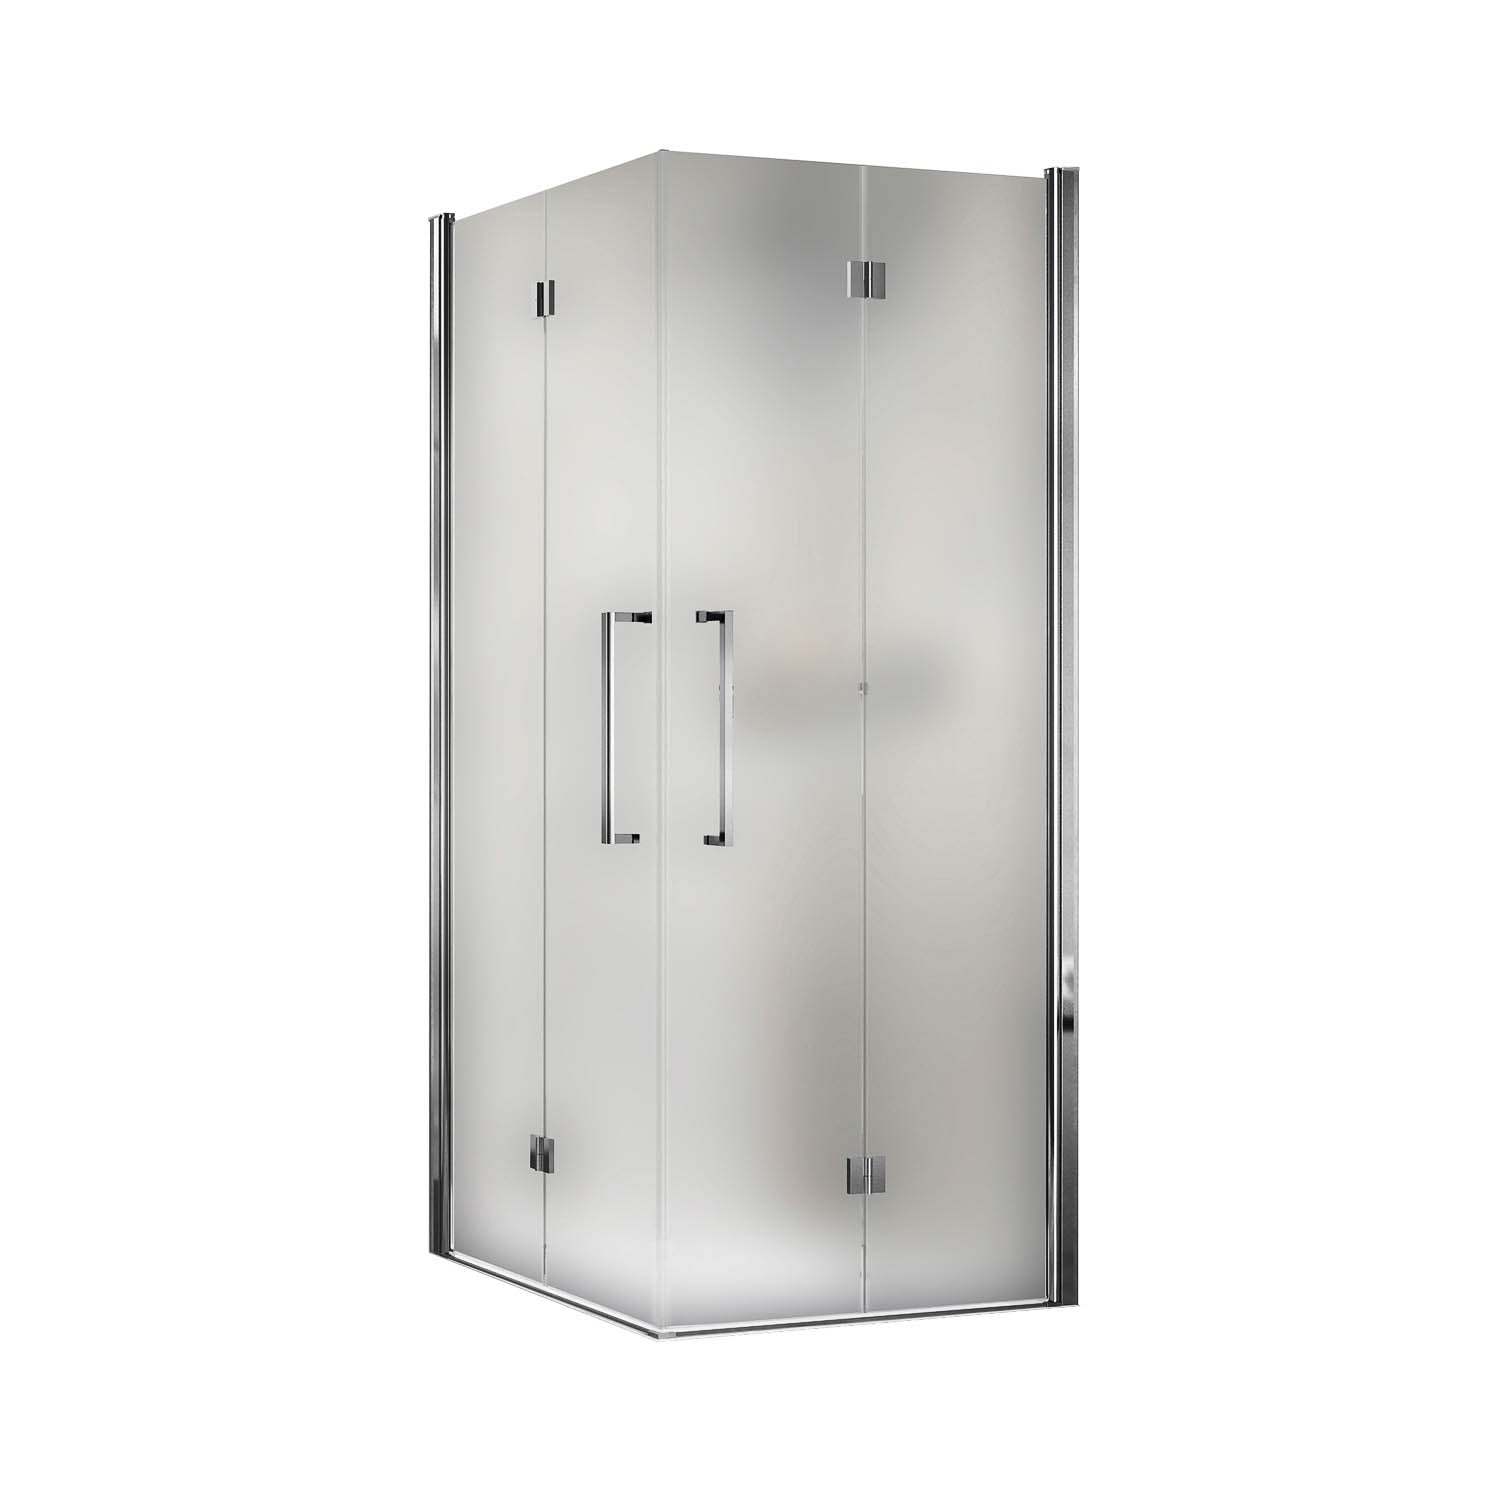 750-770mm Bliss Bi-folding Screen Frosted Glass with a chrome finish on a white background